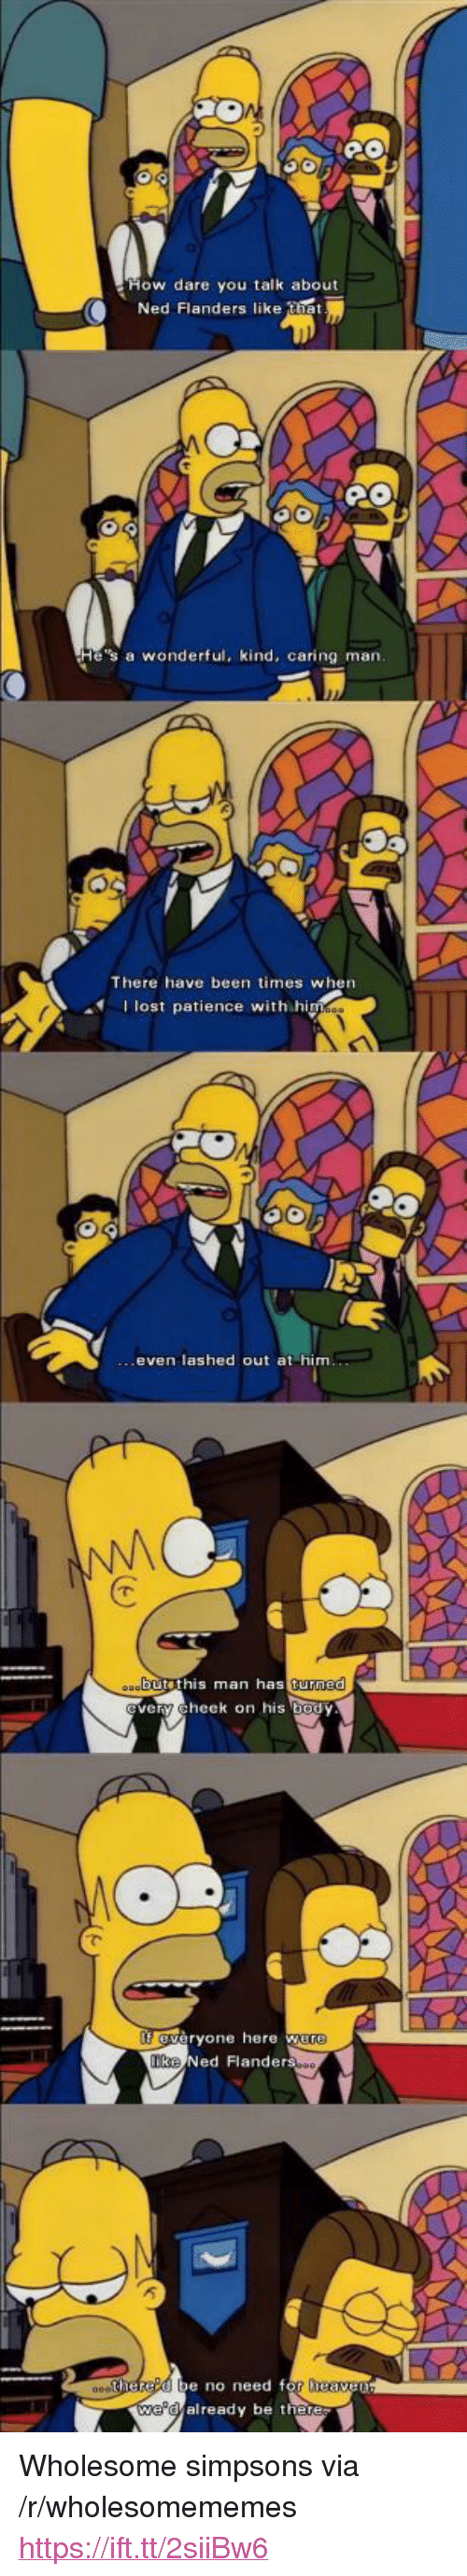 "Ned Flanders: ow dare you talk about  Ned Flanders like tiet  e's a wonderful, kind, caring marn  There have been times when  I lost patience with hi  even lashed out at him  butethis man as  turned  ery cheek on his body  eryone here w  Ned Flanders  e no need f  already be the <p>Wholesome simpsons via /r/wholesomememes <a href=""https://ift.tt/2siiBw6"">https://ift.tt/2siiBw6</a></p>"